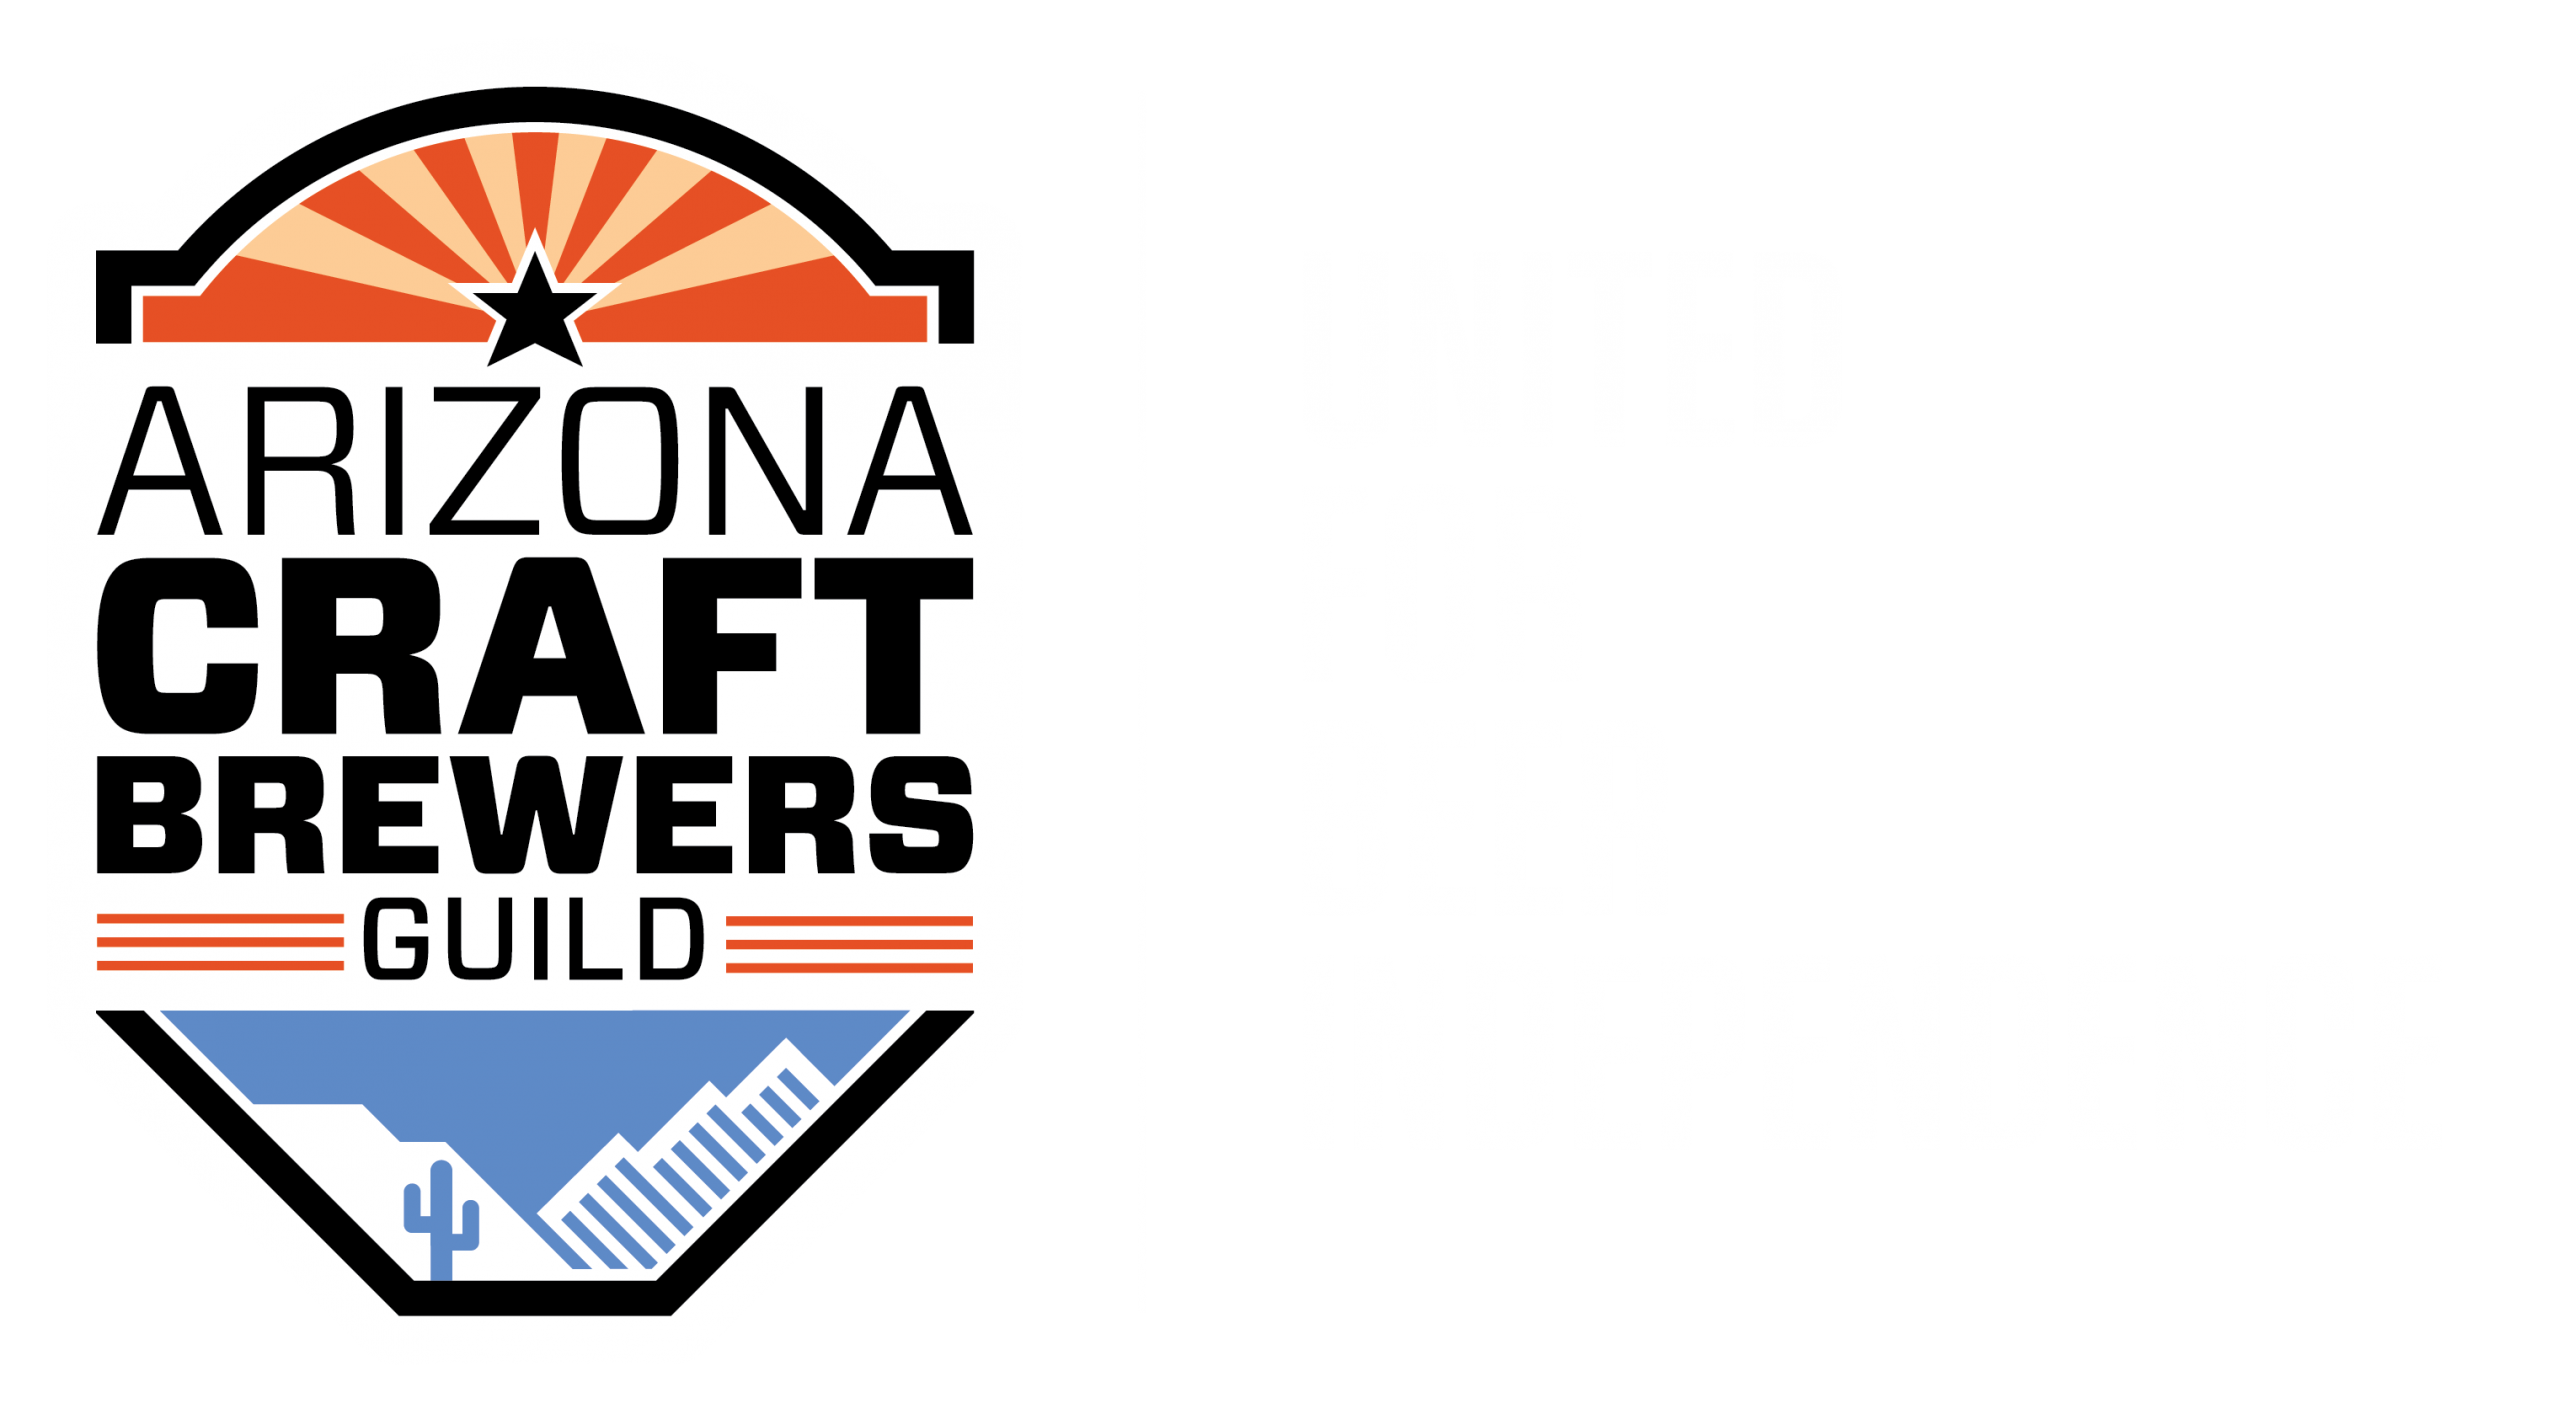 Freak'N Brewing Company | Arizona Craft Brewers Guild